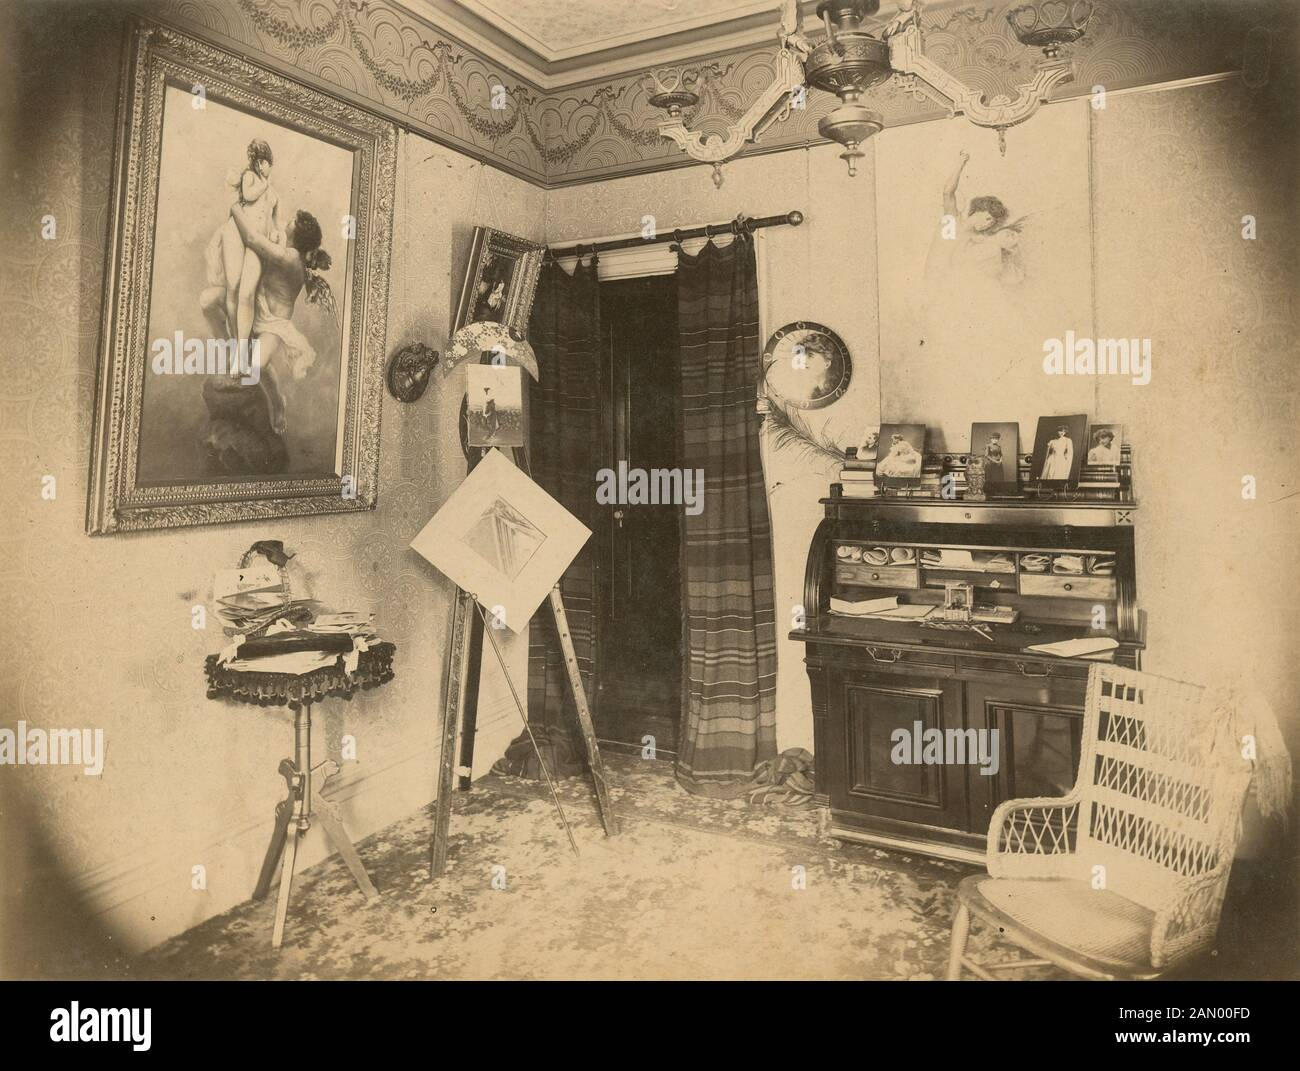 antique 1890 photograph victorian sitting room in the aesthetic movement style location unknown probably pennsylvania new jersey or new york source original photograph 2AN00FD